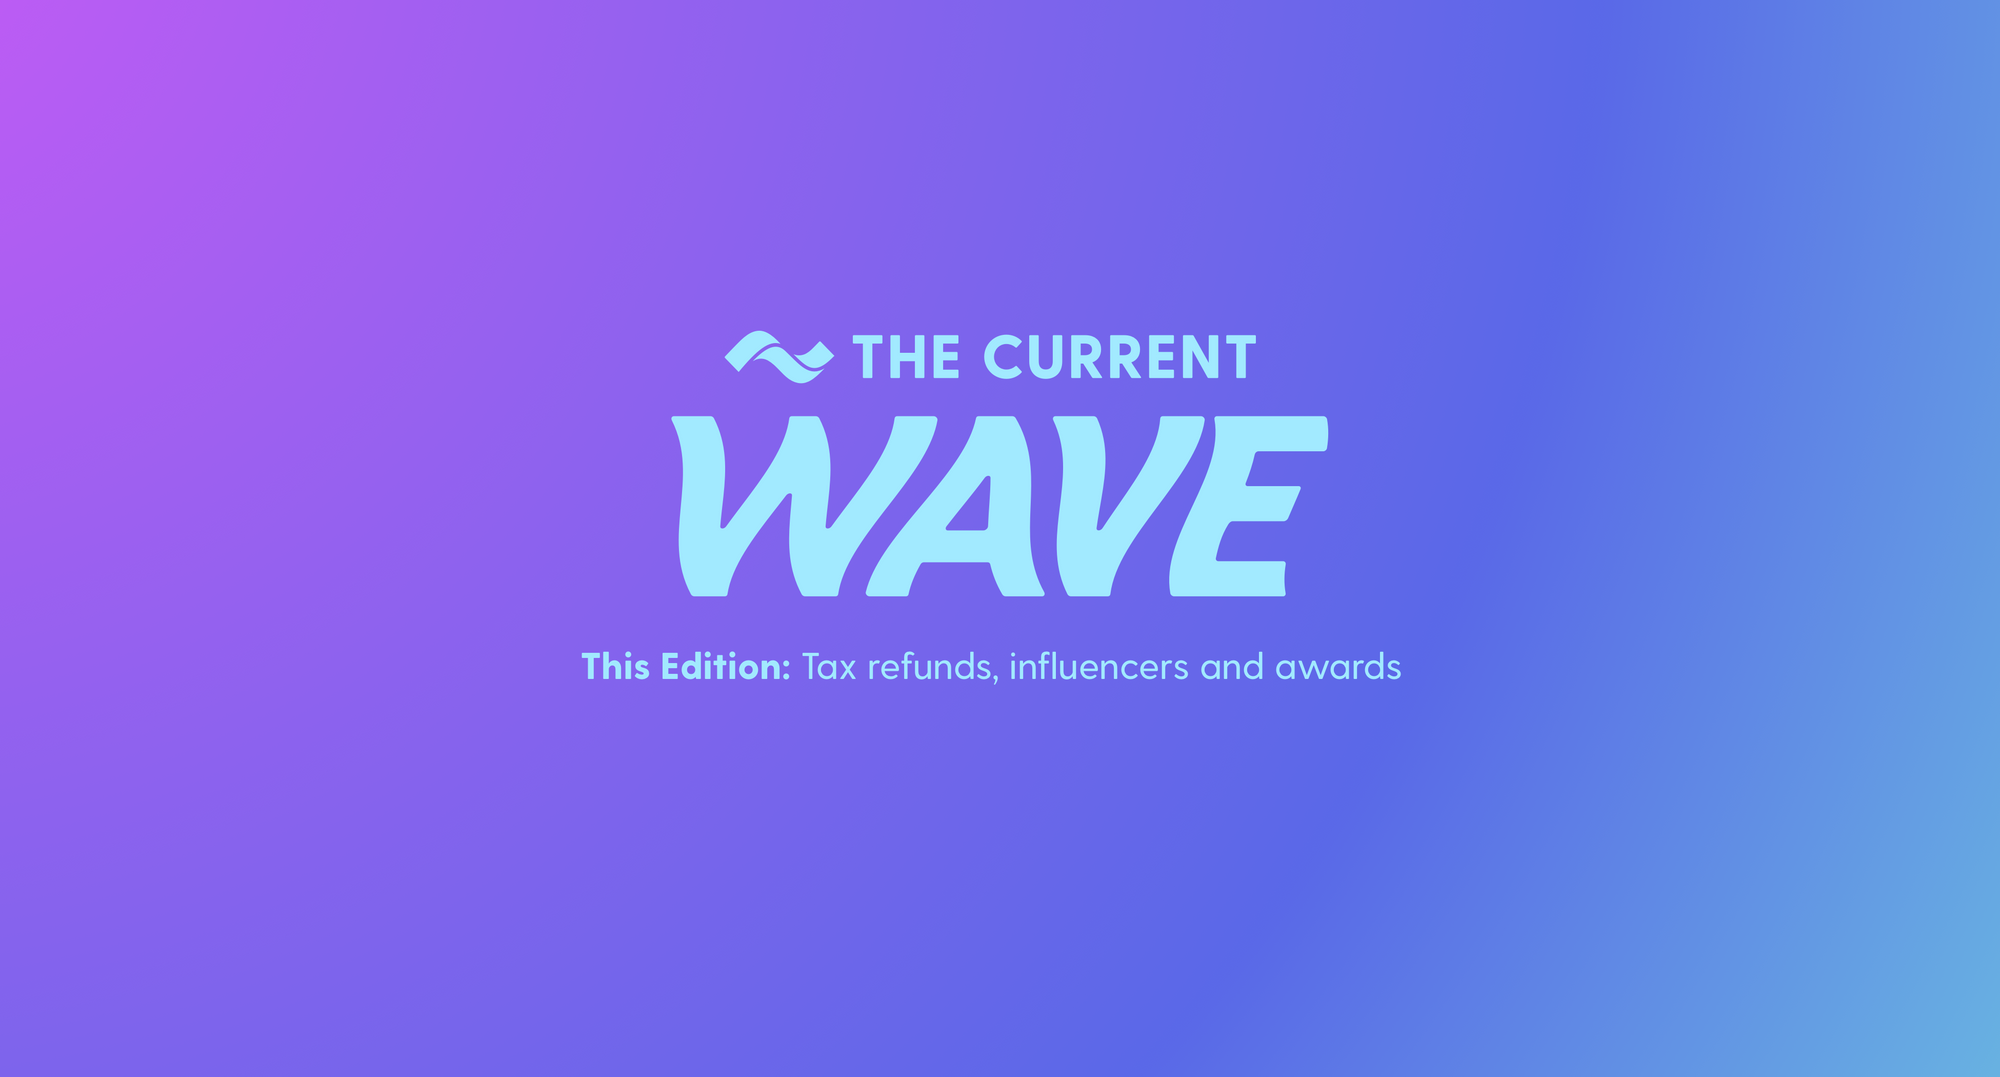 the-current-wave-tax-refunds-influencers-and-awards